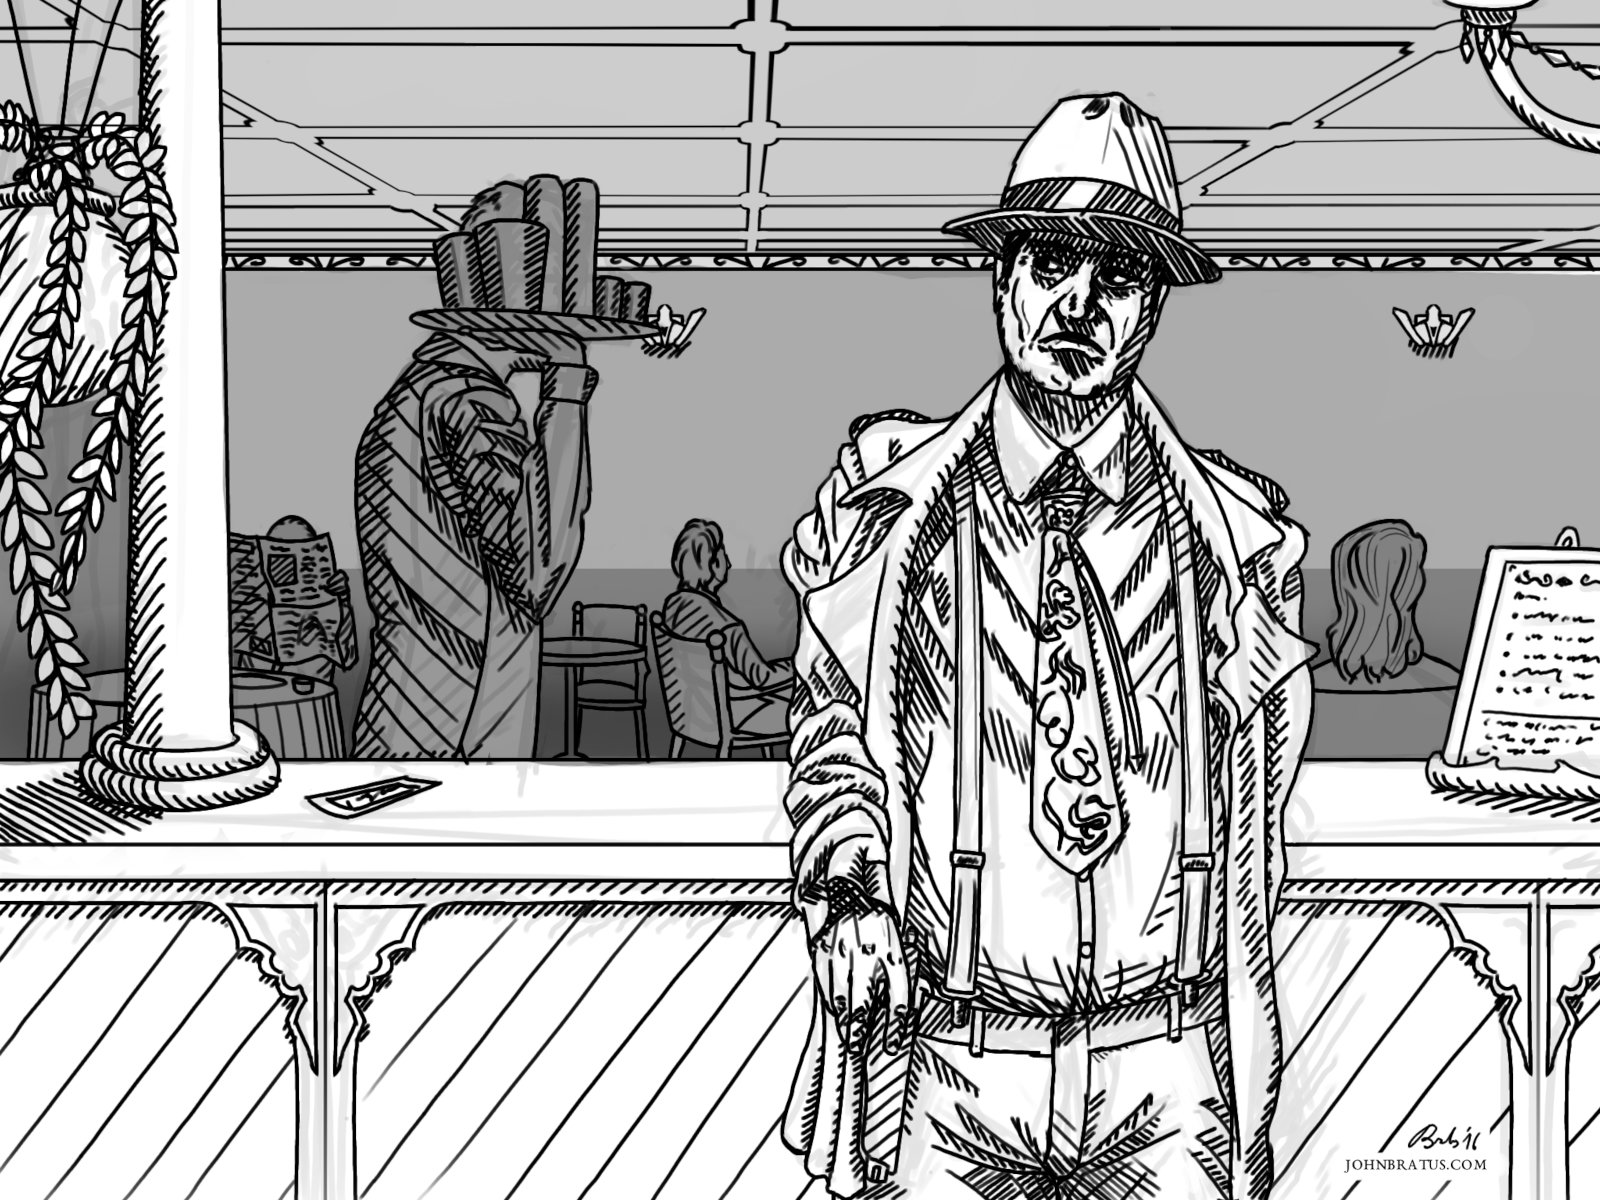 Neo-noir digital illustration of a mobster taking off his trench coat in a restaurant